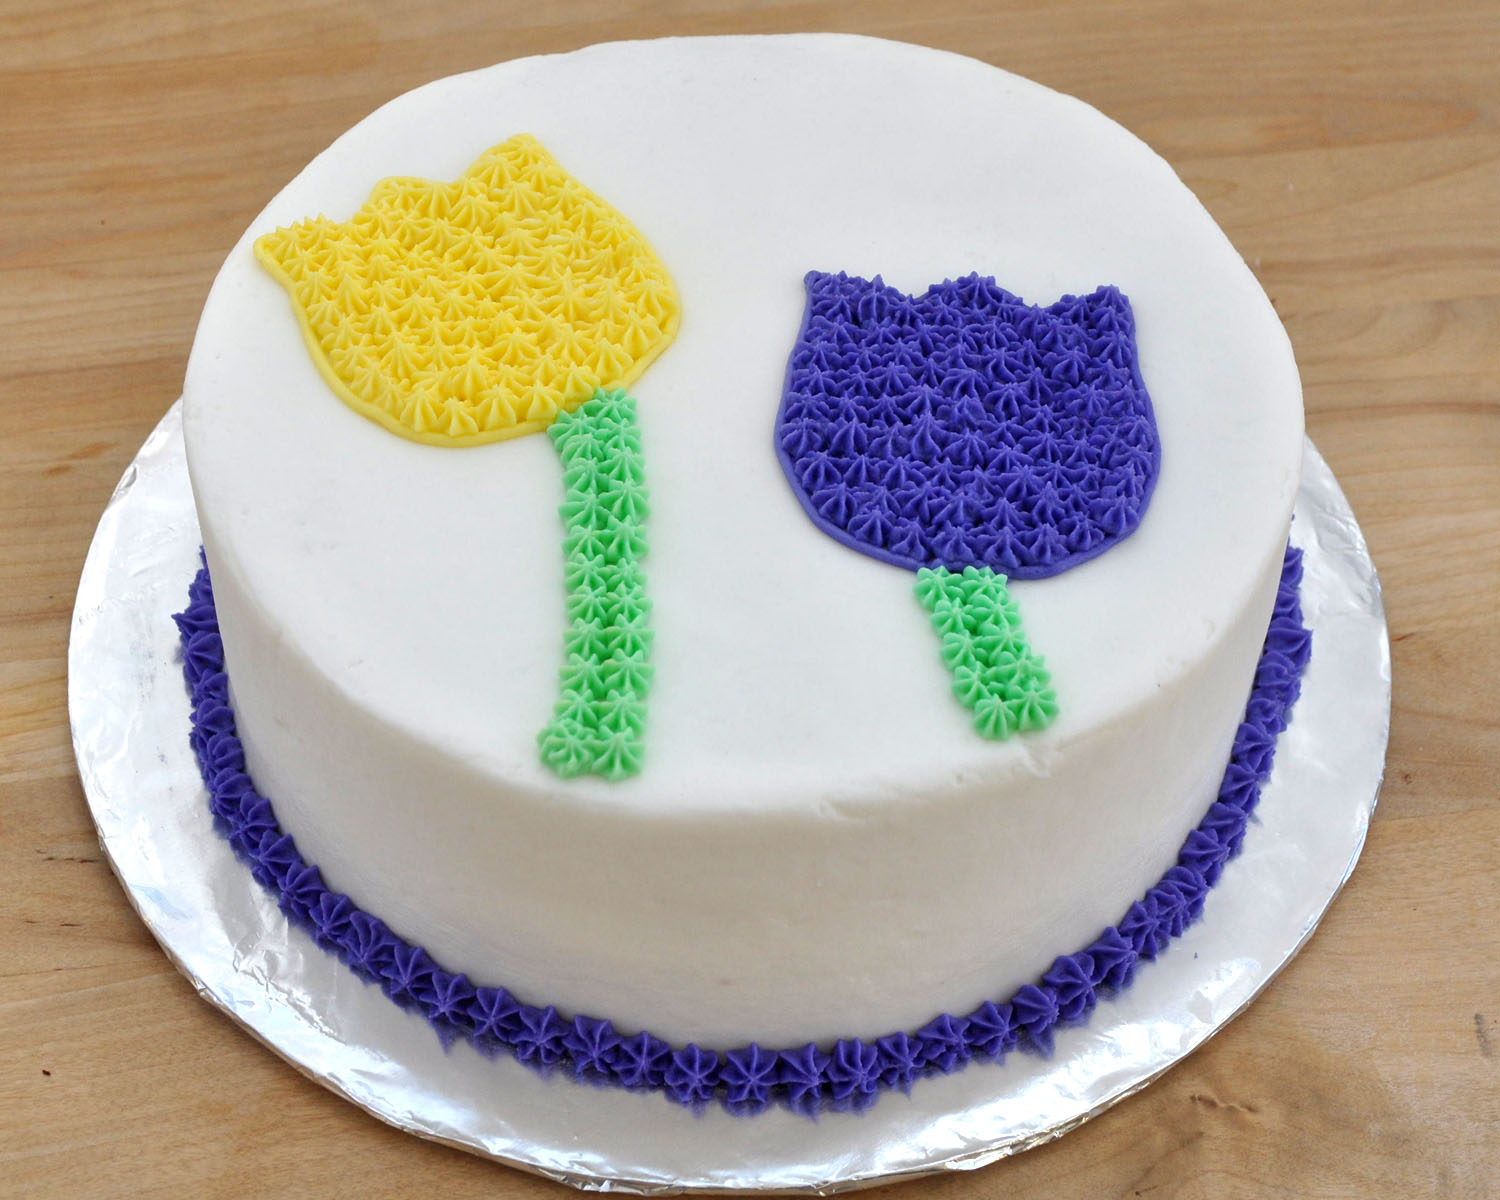 Simple Cake Decoration Images : Beki Cook s Cake Blog: Cake Decorating 101 - Easy Birthday ...